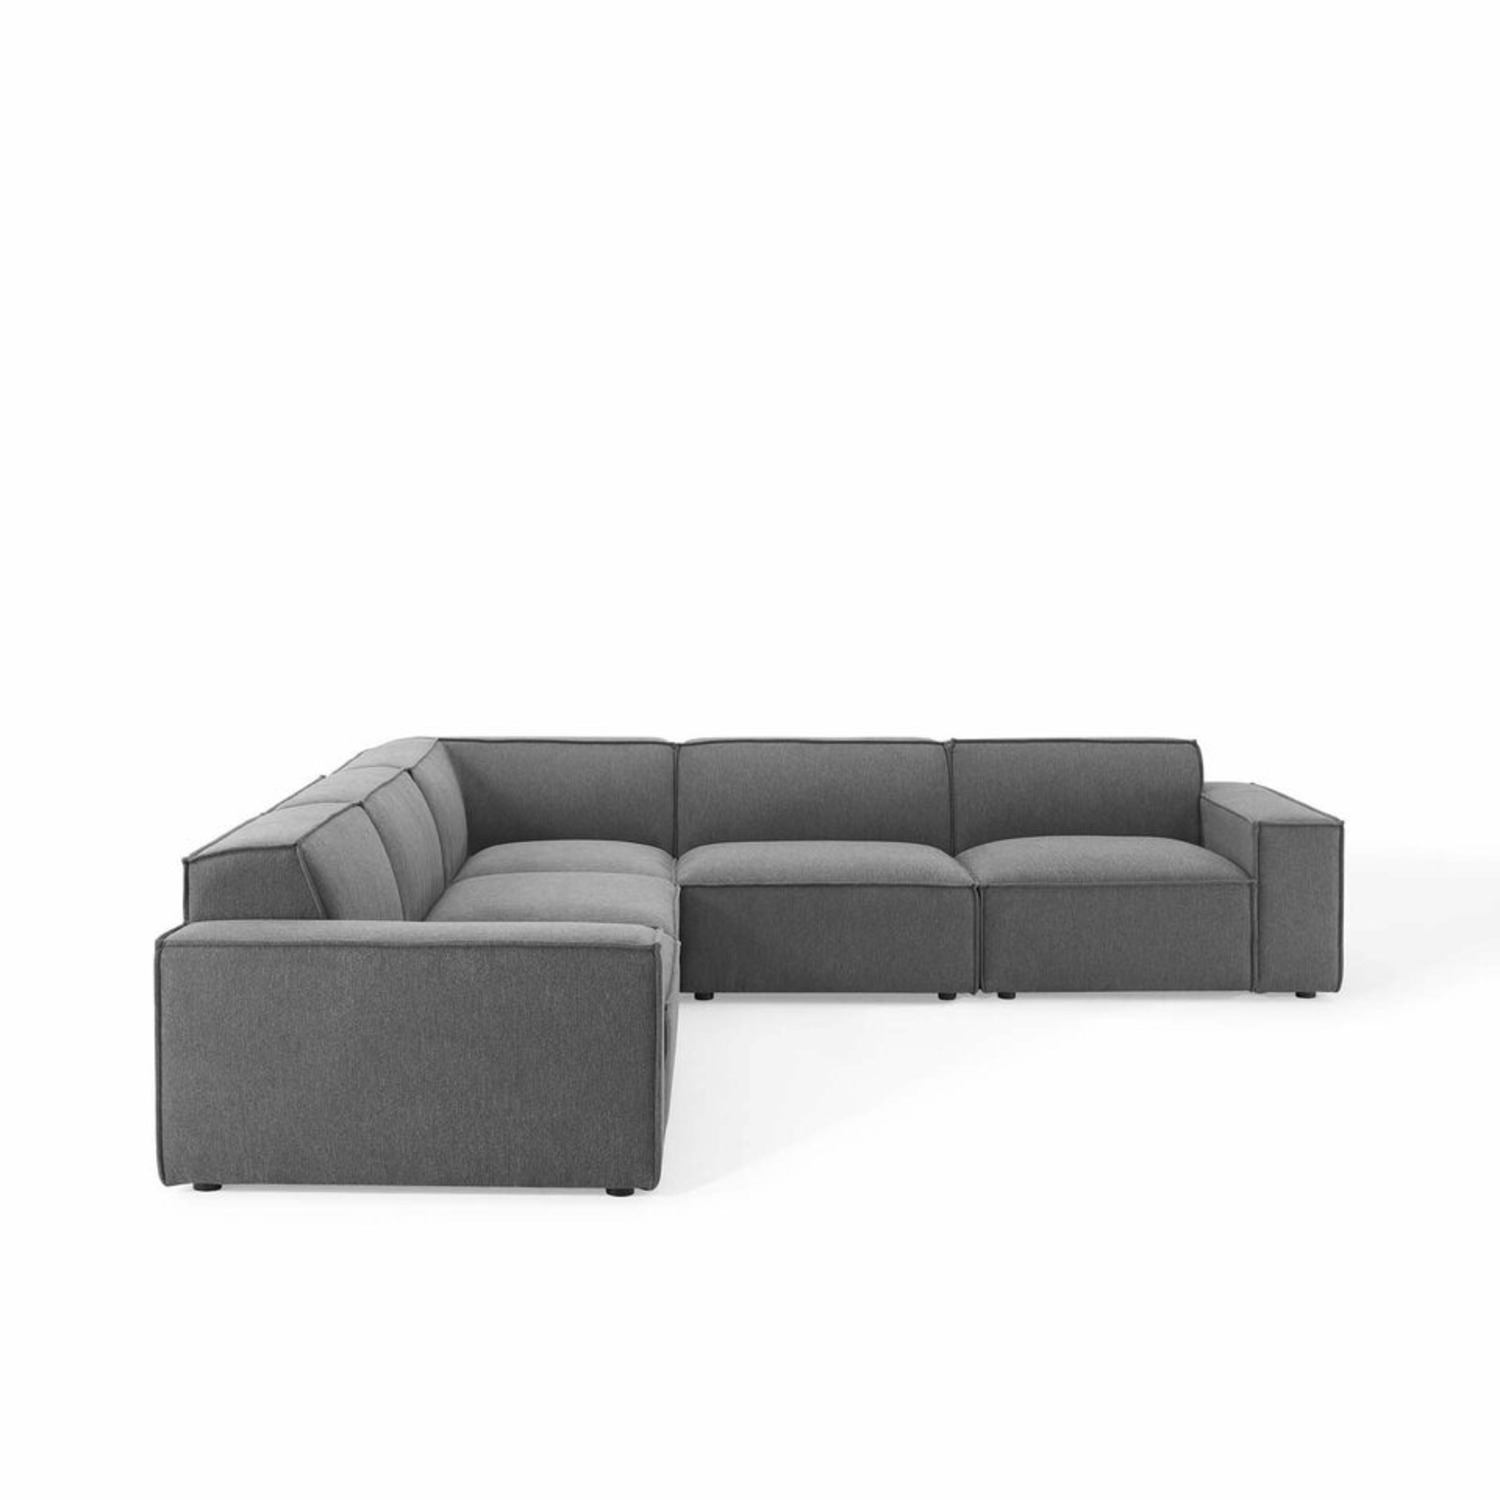 5-Piece Sectional Sofa In CharcoalW/ Piping Detail - image-0